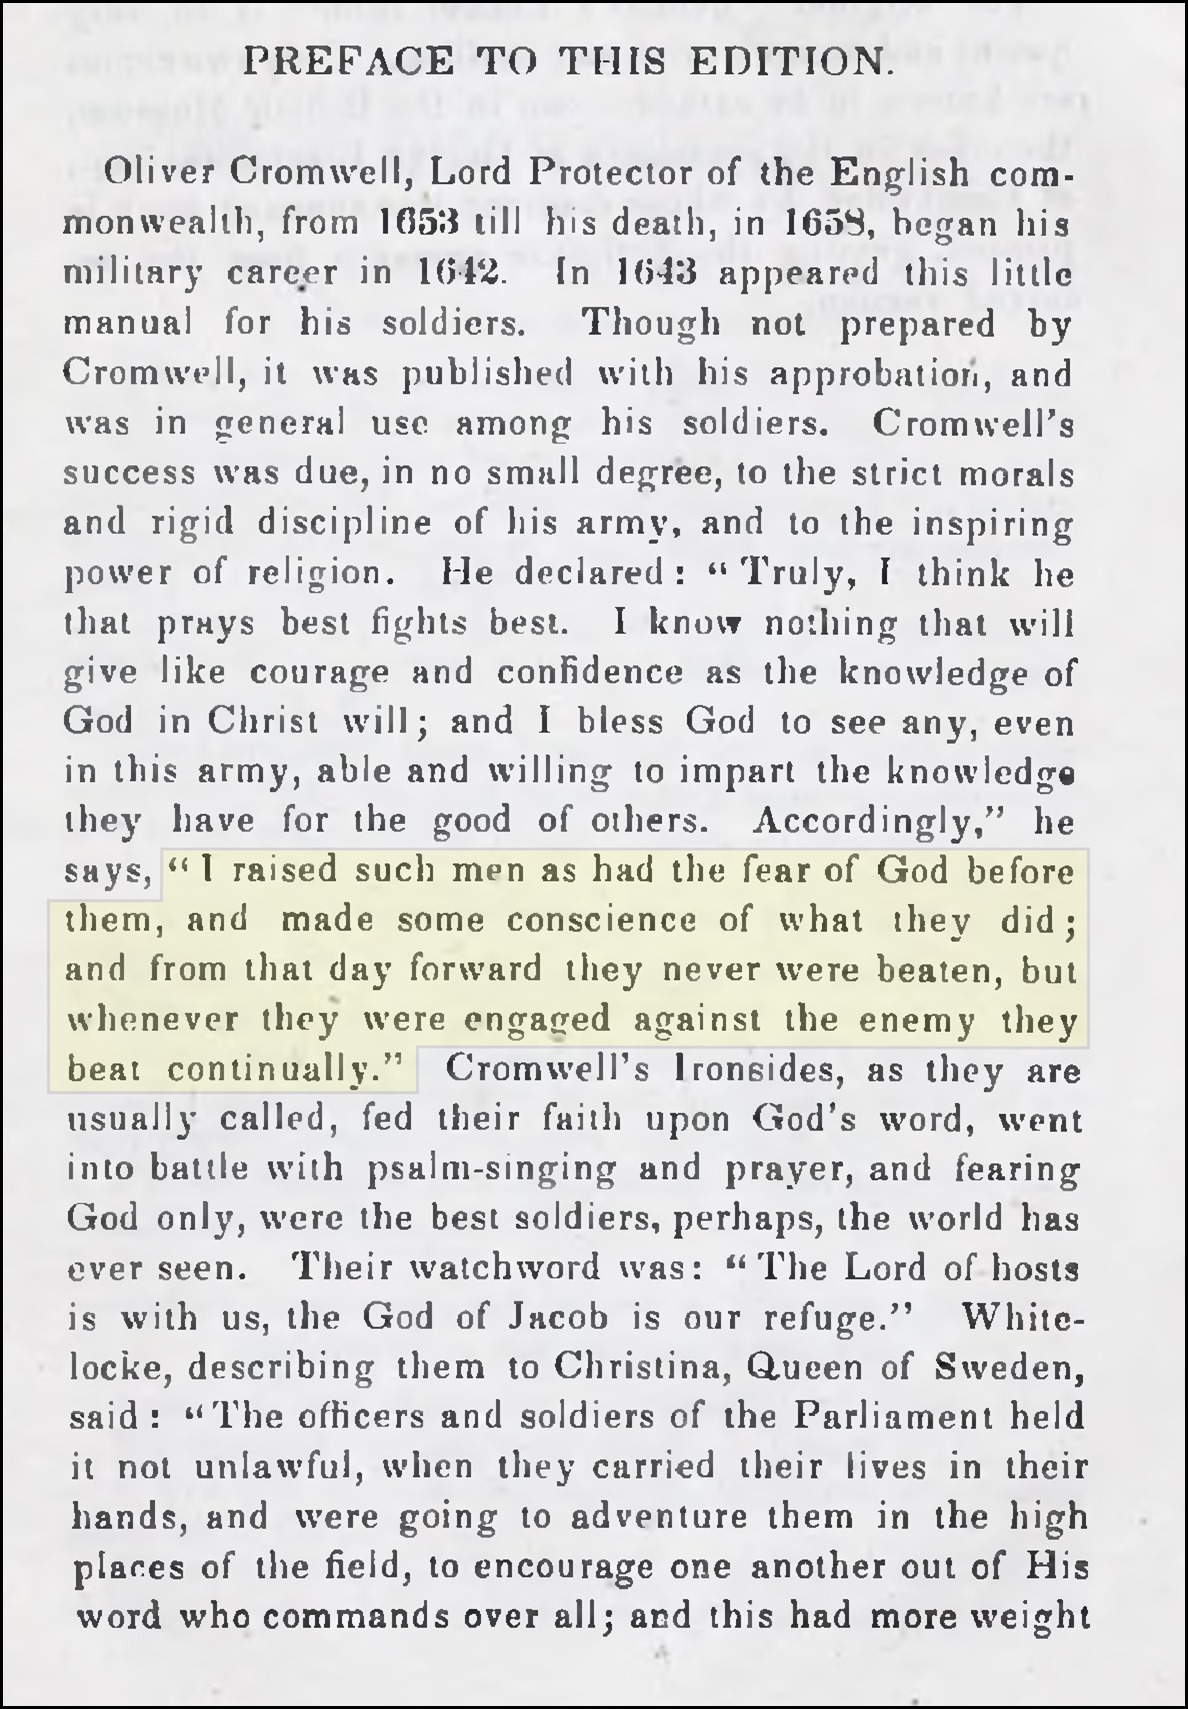 Preface to The Soldier's pocket Bible